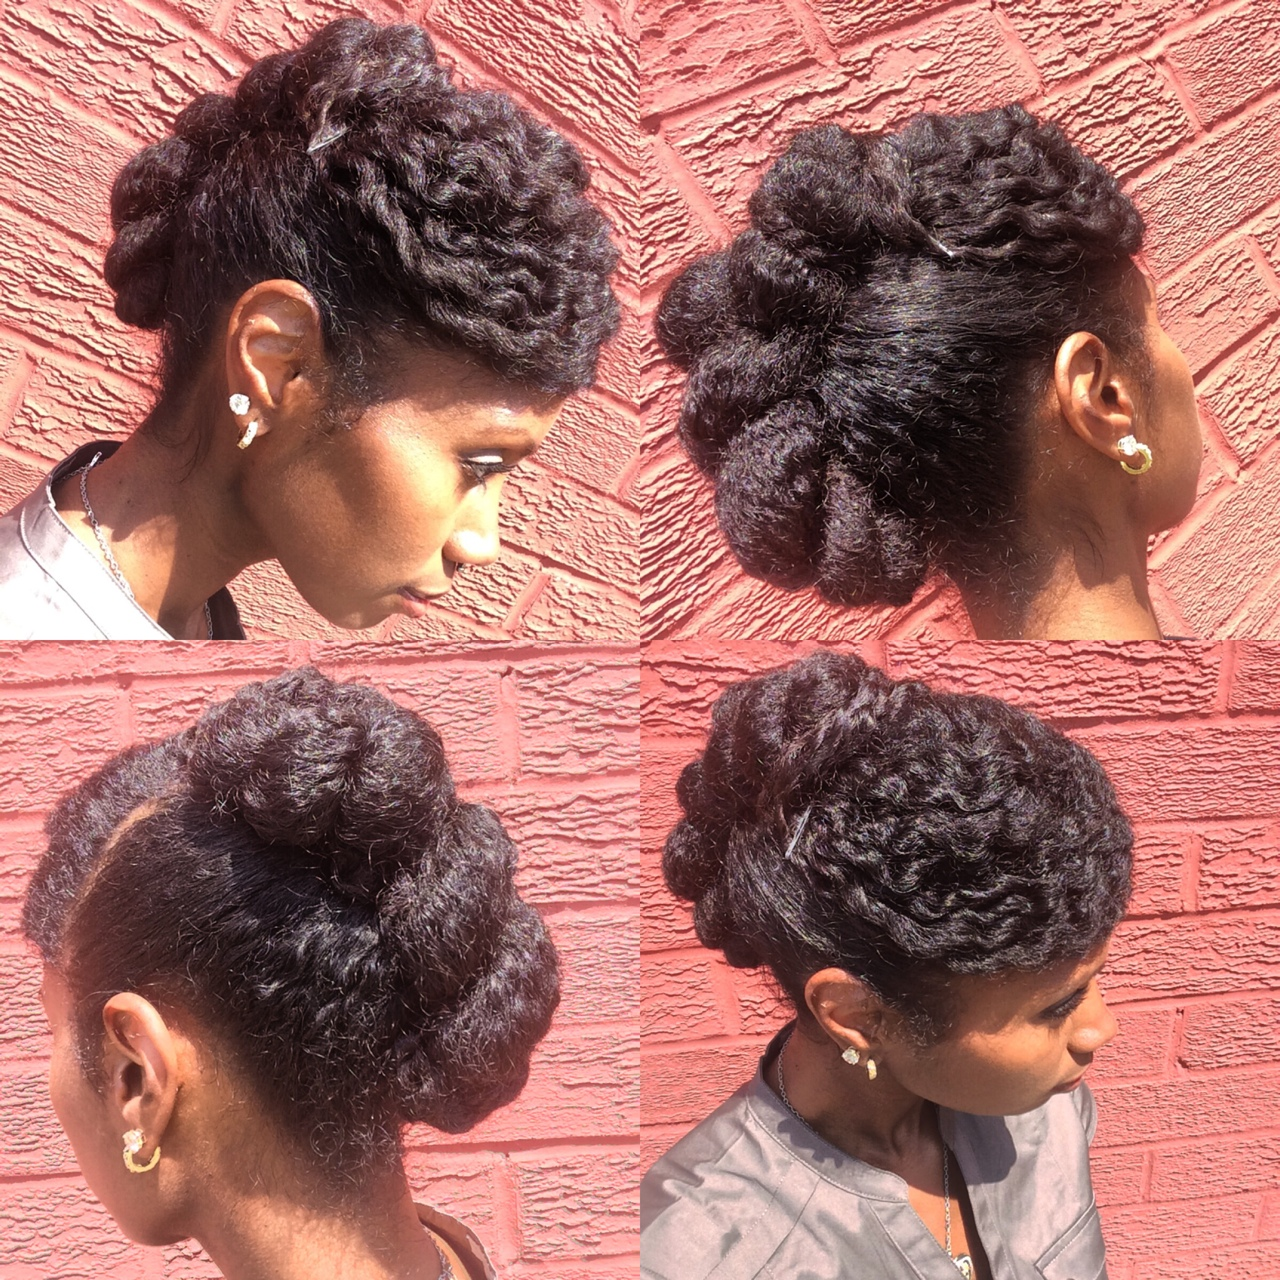 Sassy Hair    A summertime-fine updo inspired by  Mo Knows Hair.       This definitely took some wrangling & I didn't exactly love it at first. But the time it saved me this morning plus all of the compliments it got and how it held up kinda made it worth the struggle. I think I'll be practicing my updo skills this   #summer  . I can see why so many people love this style!